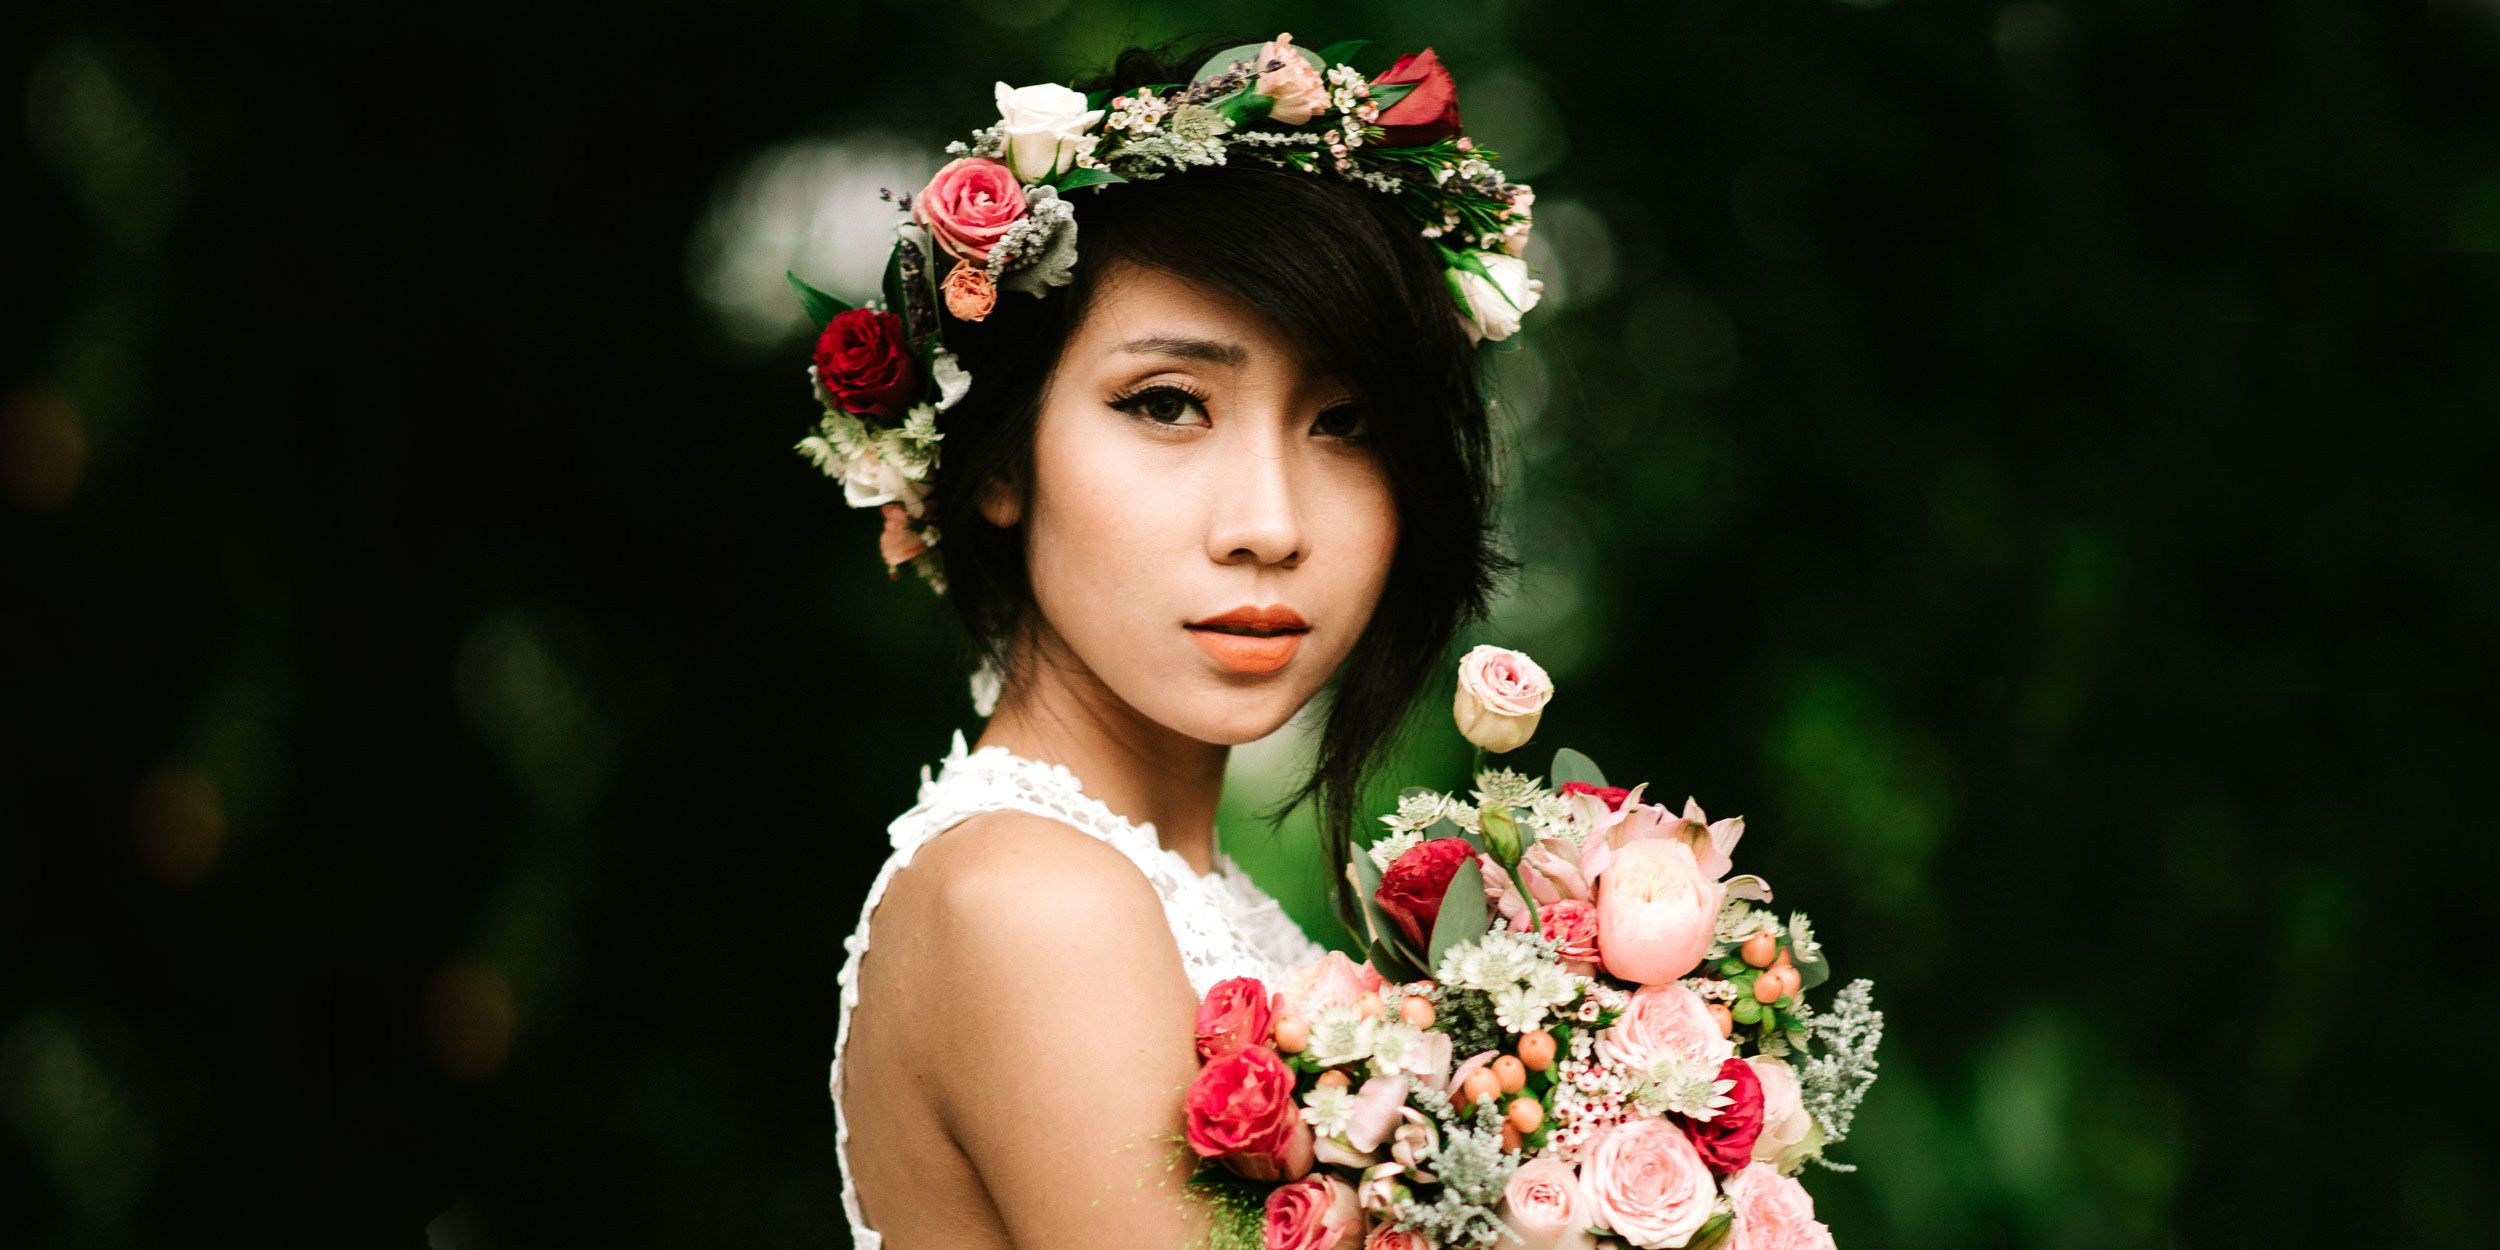 33b54ea69a 6 Beauty Things Real Brides Say You Should Do to Prepare for Your Big Day